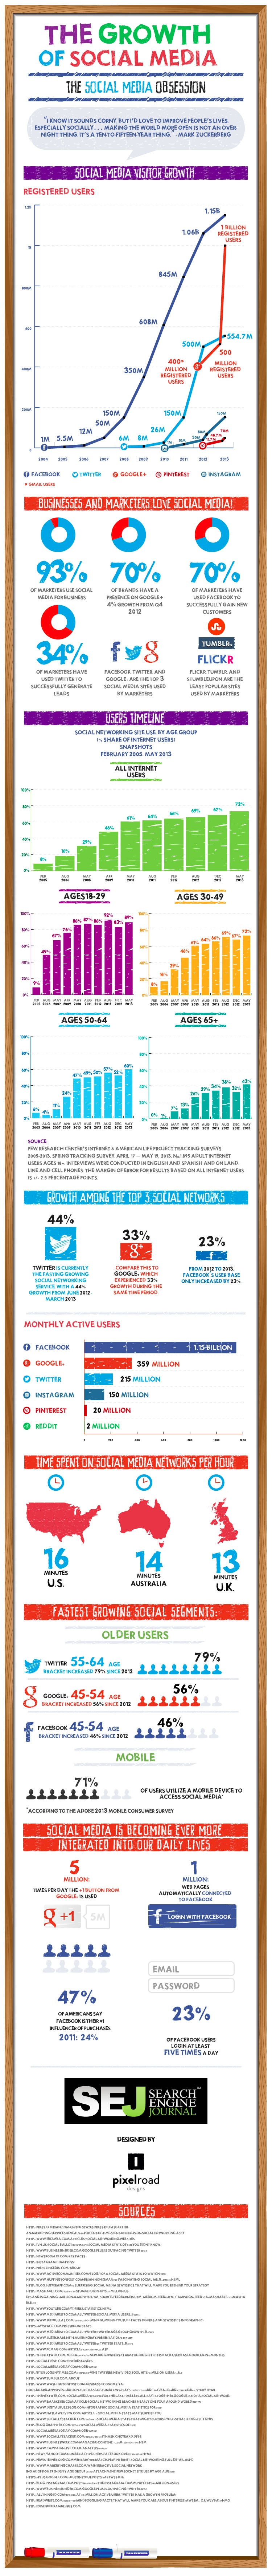 growth-of-social-media-2013-ben-martin